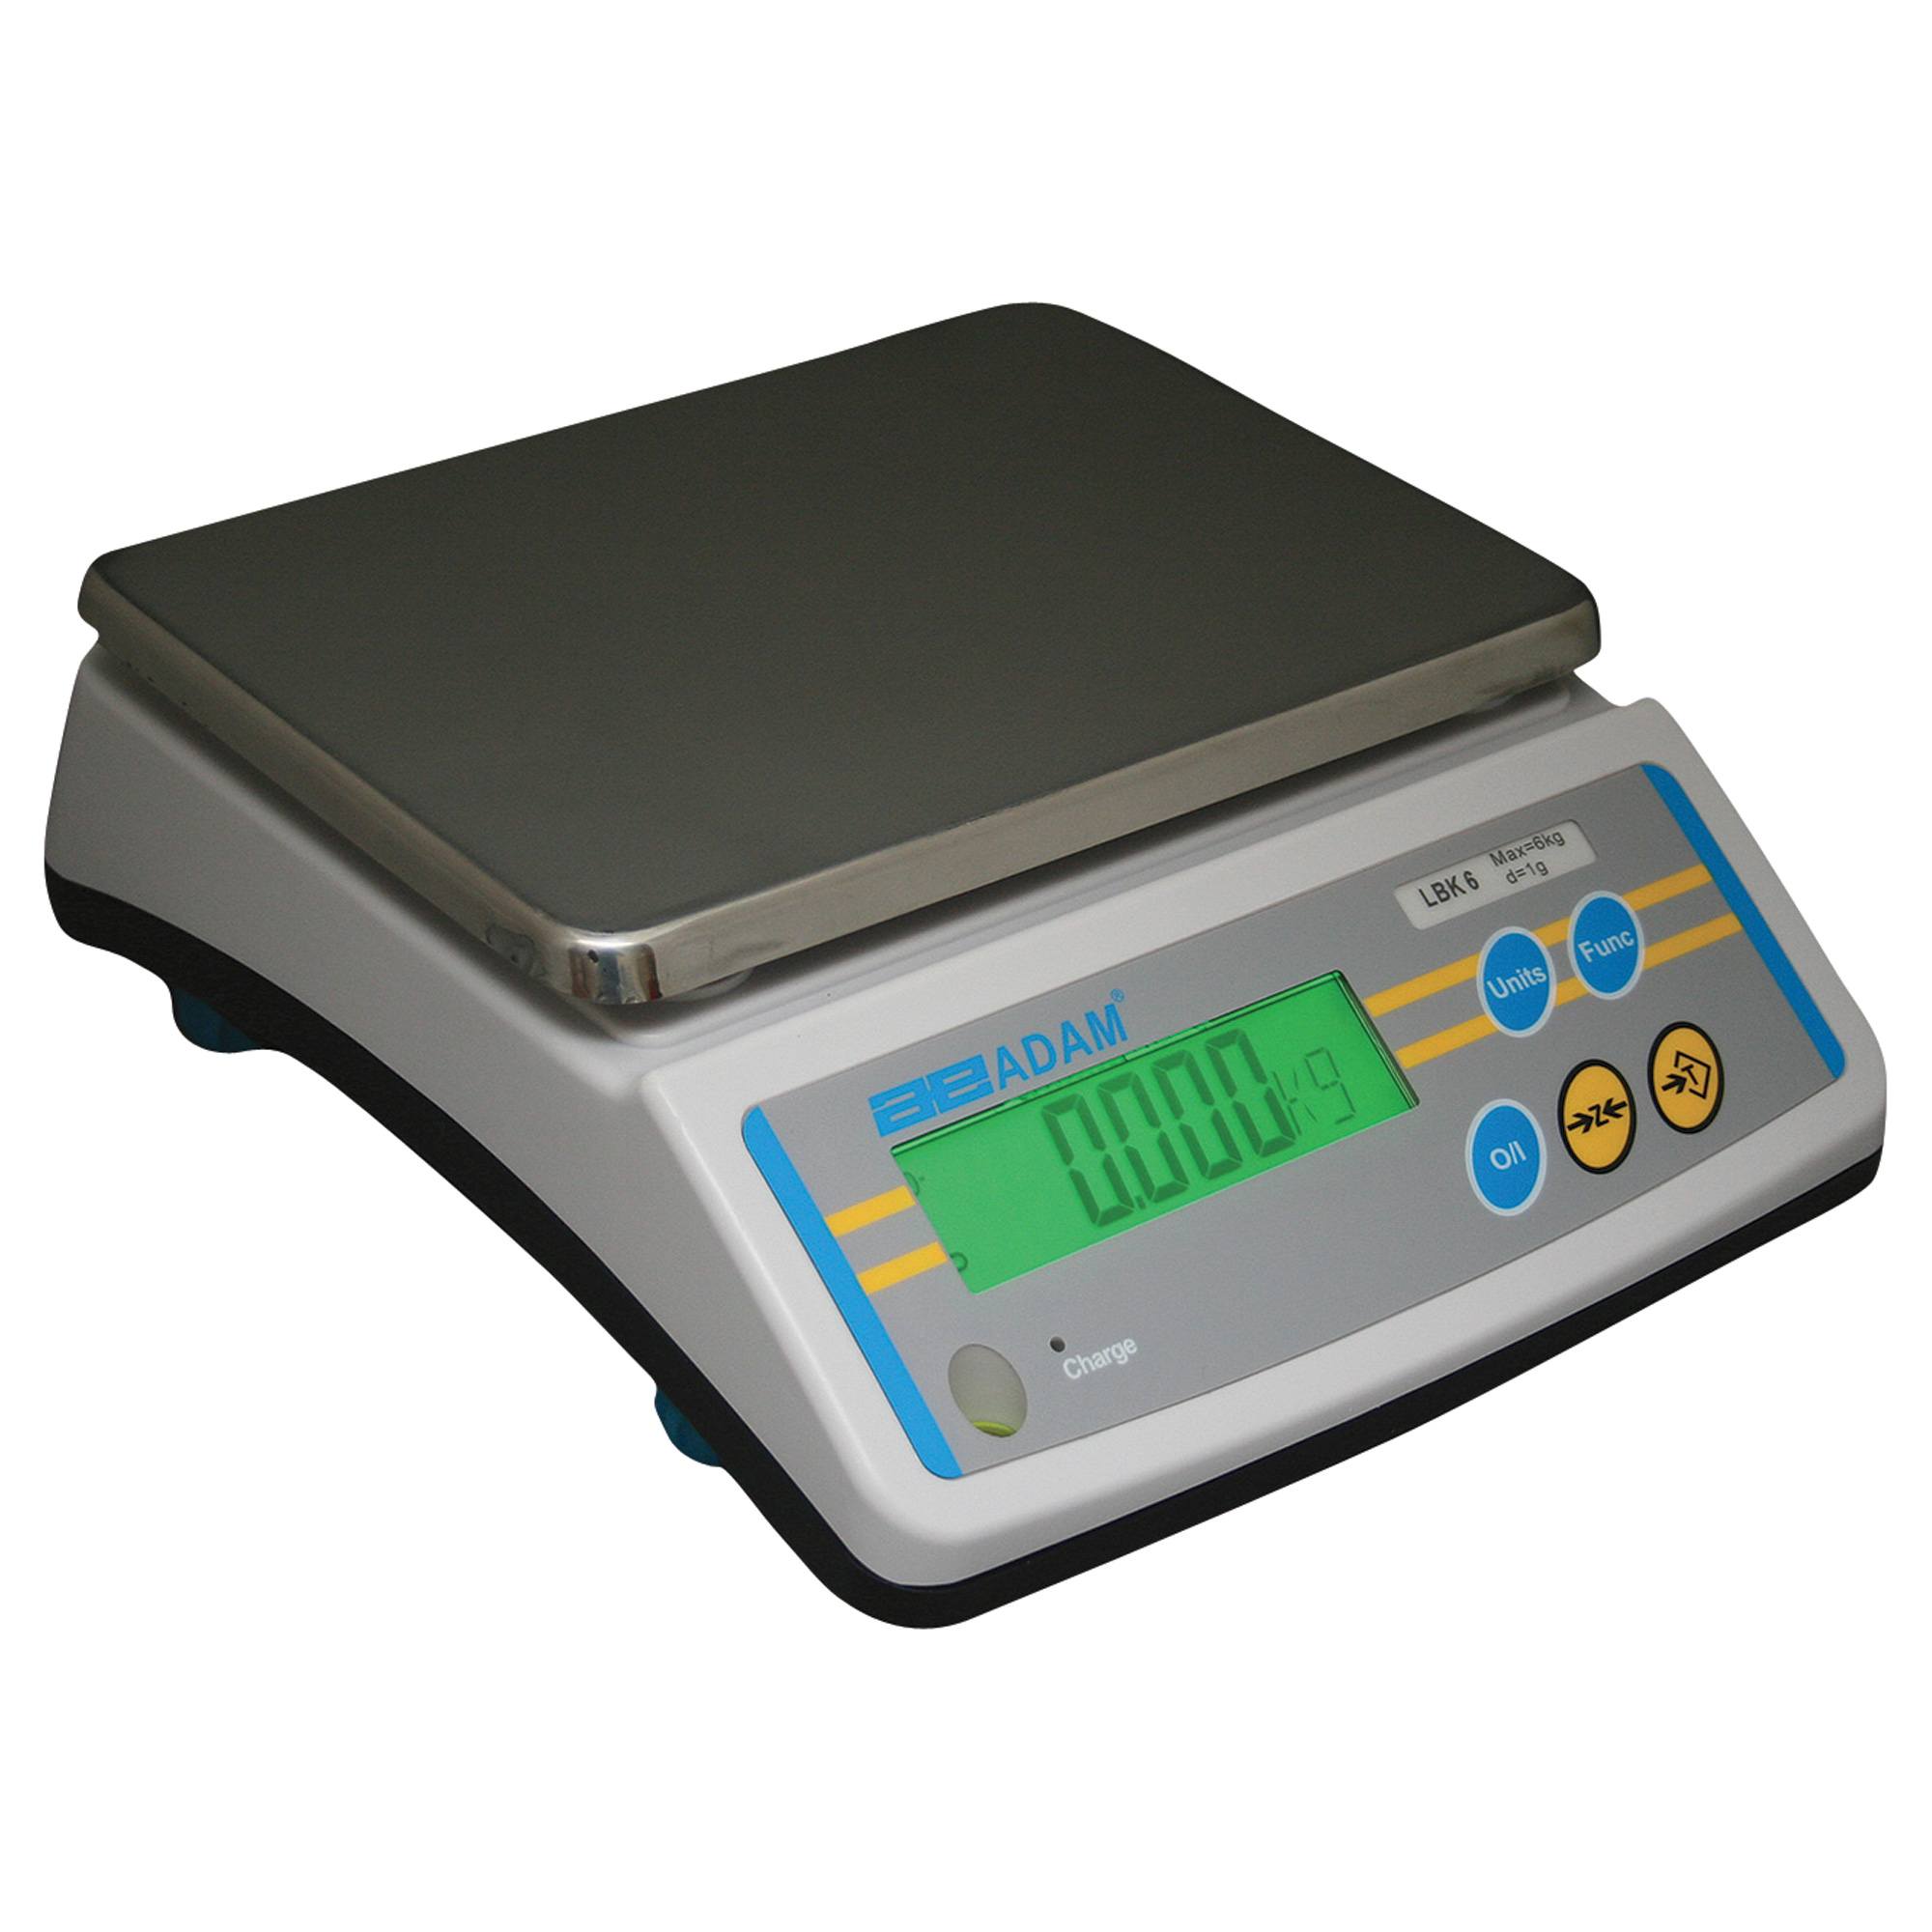 Adam Equipment LBK 25A Weighing Scale, SS Pltfrm, 12kg/25...